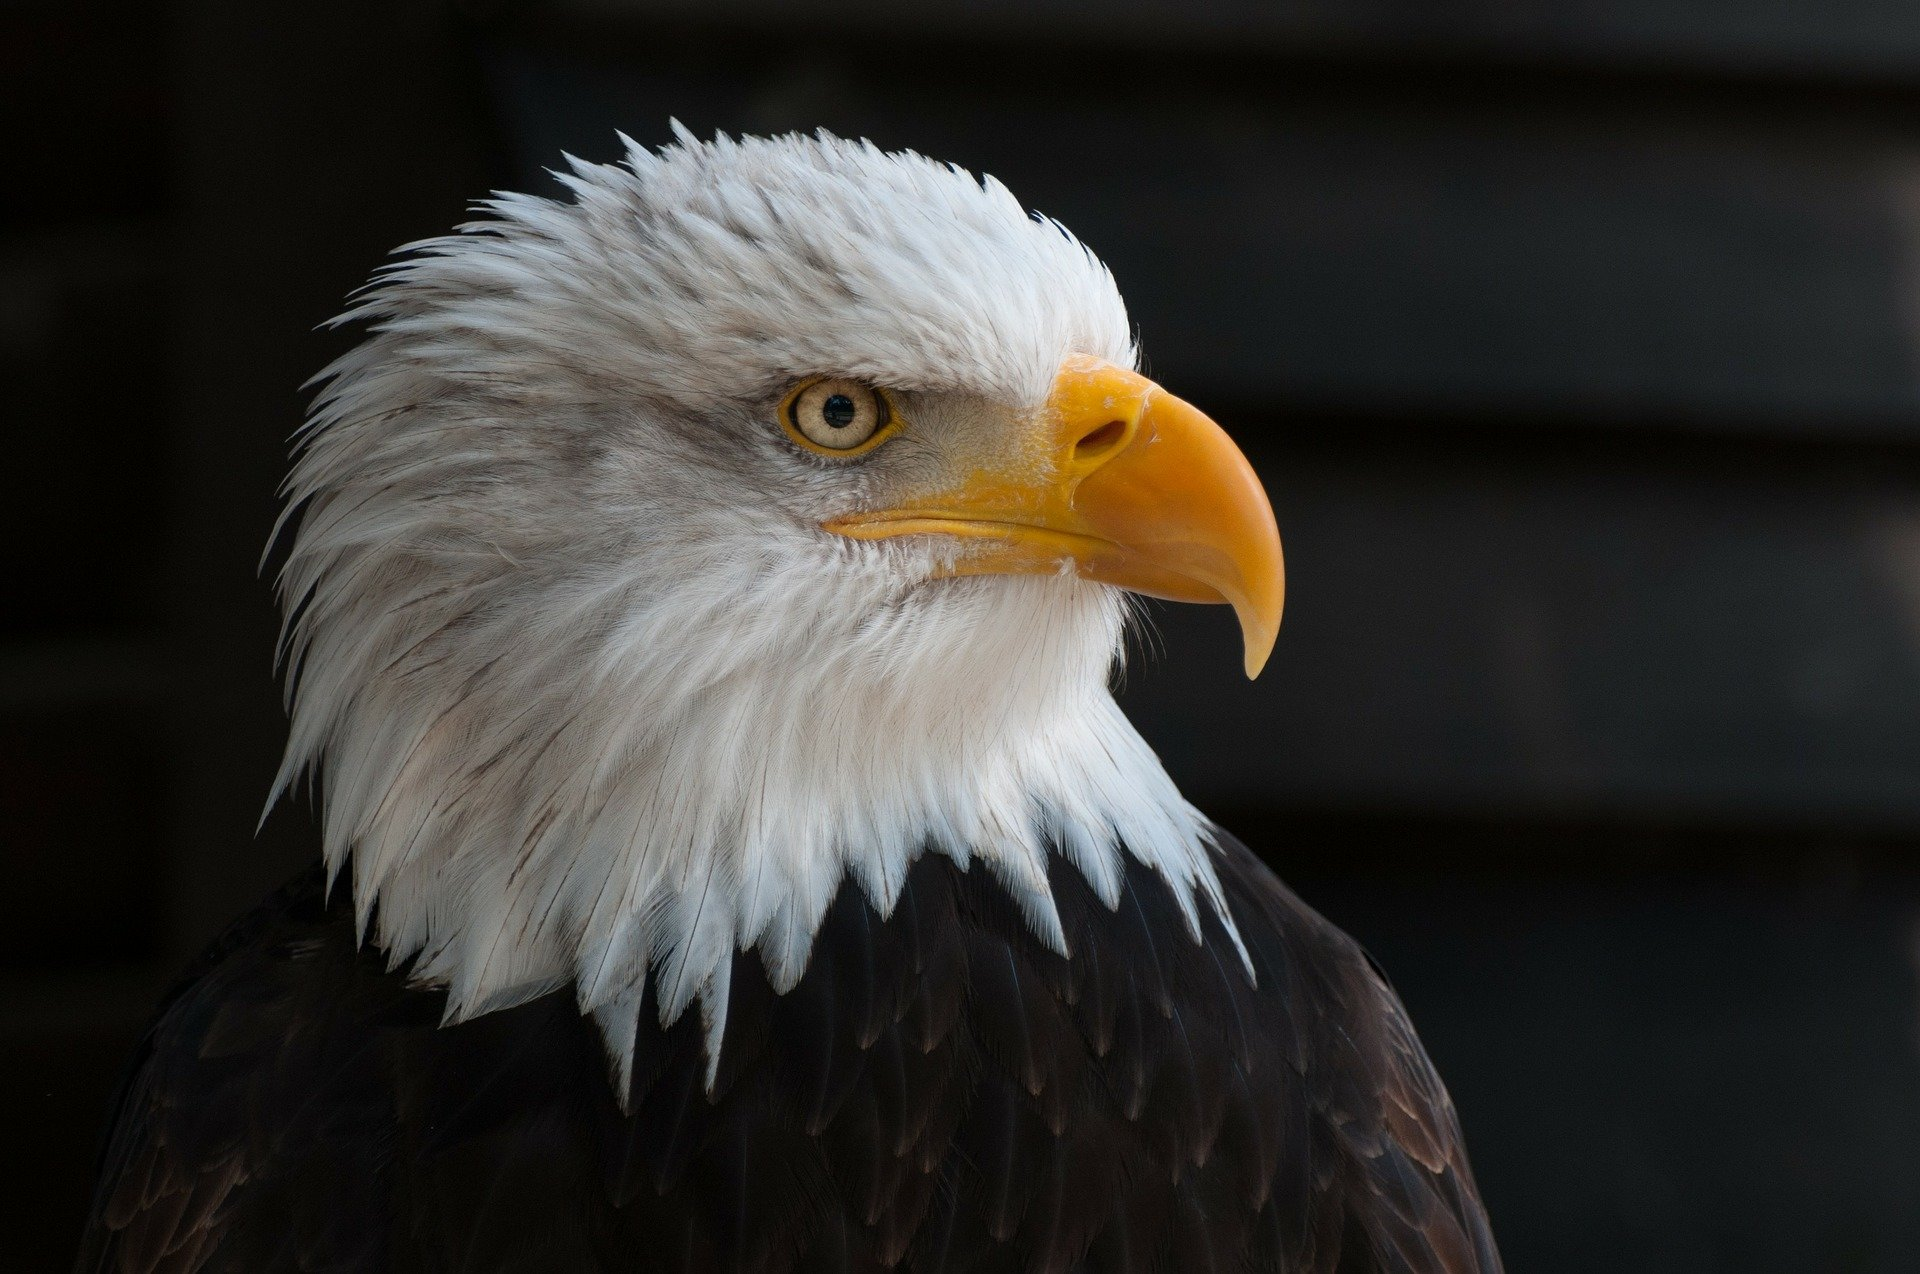 Majestic Eagles: Compelling Facts and Images